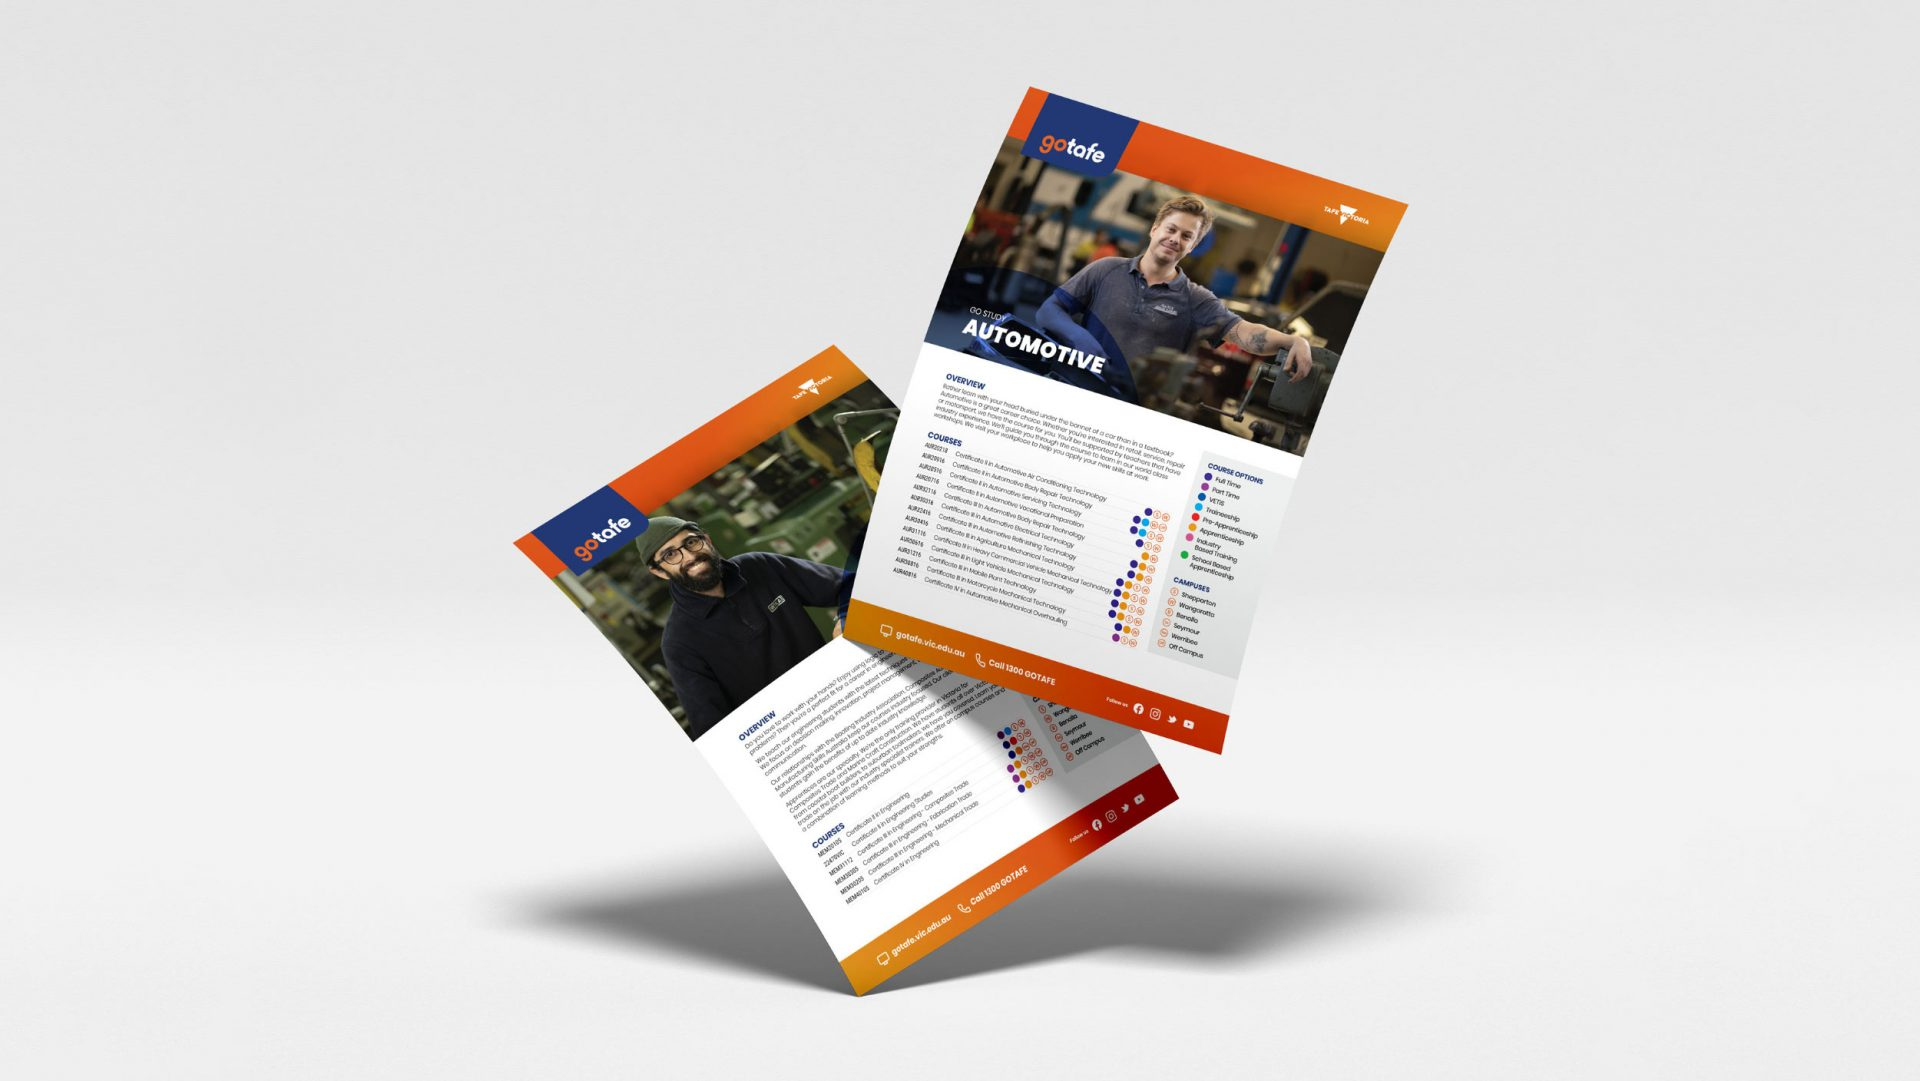 Single page course guides for gotafe